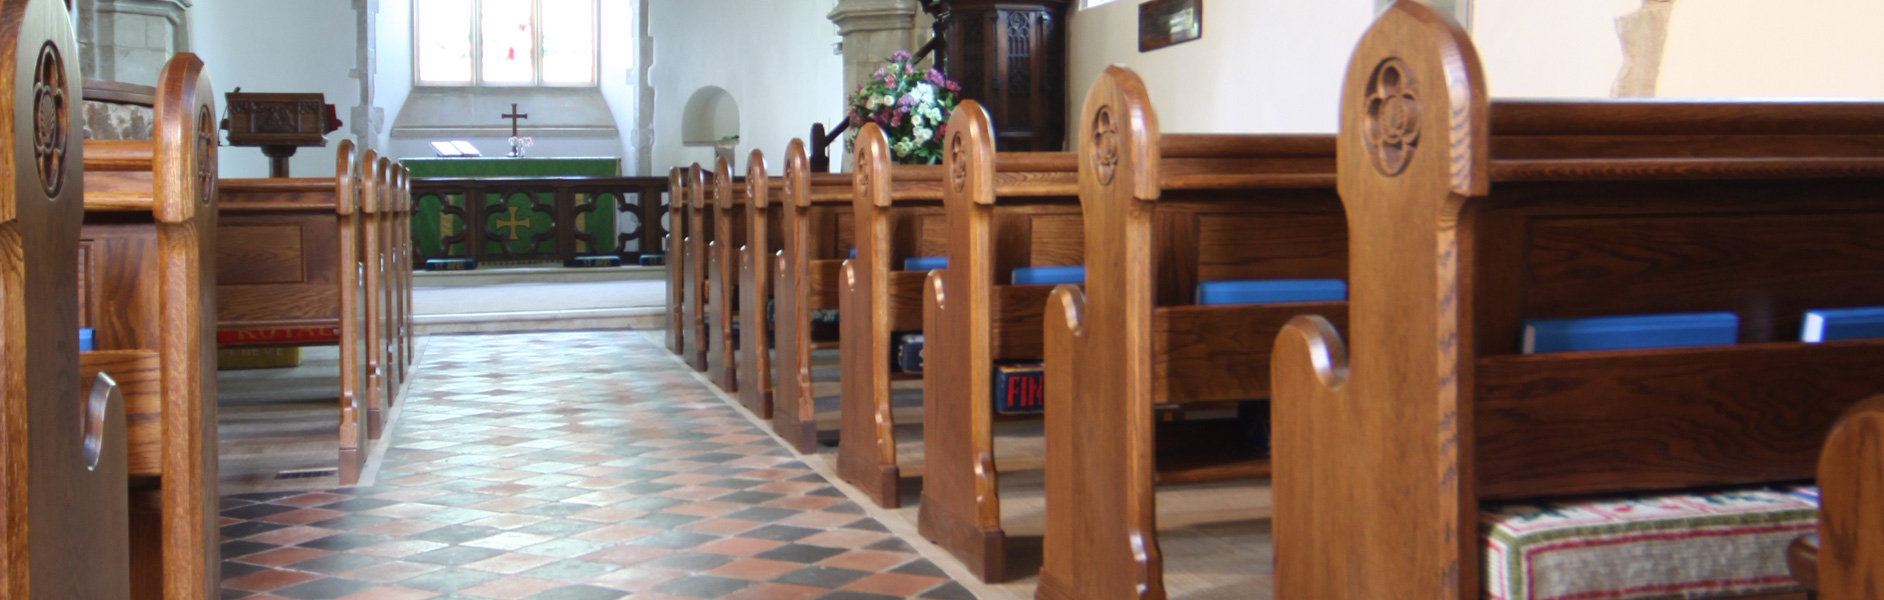 ICS pews designed for St. James' Church Finchemstead